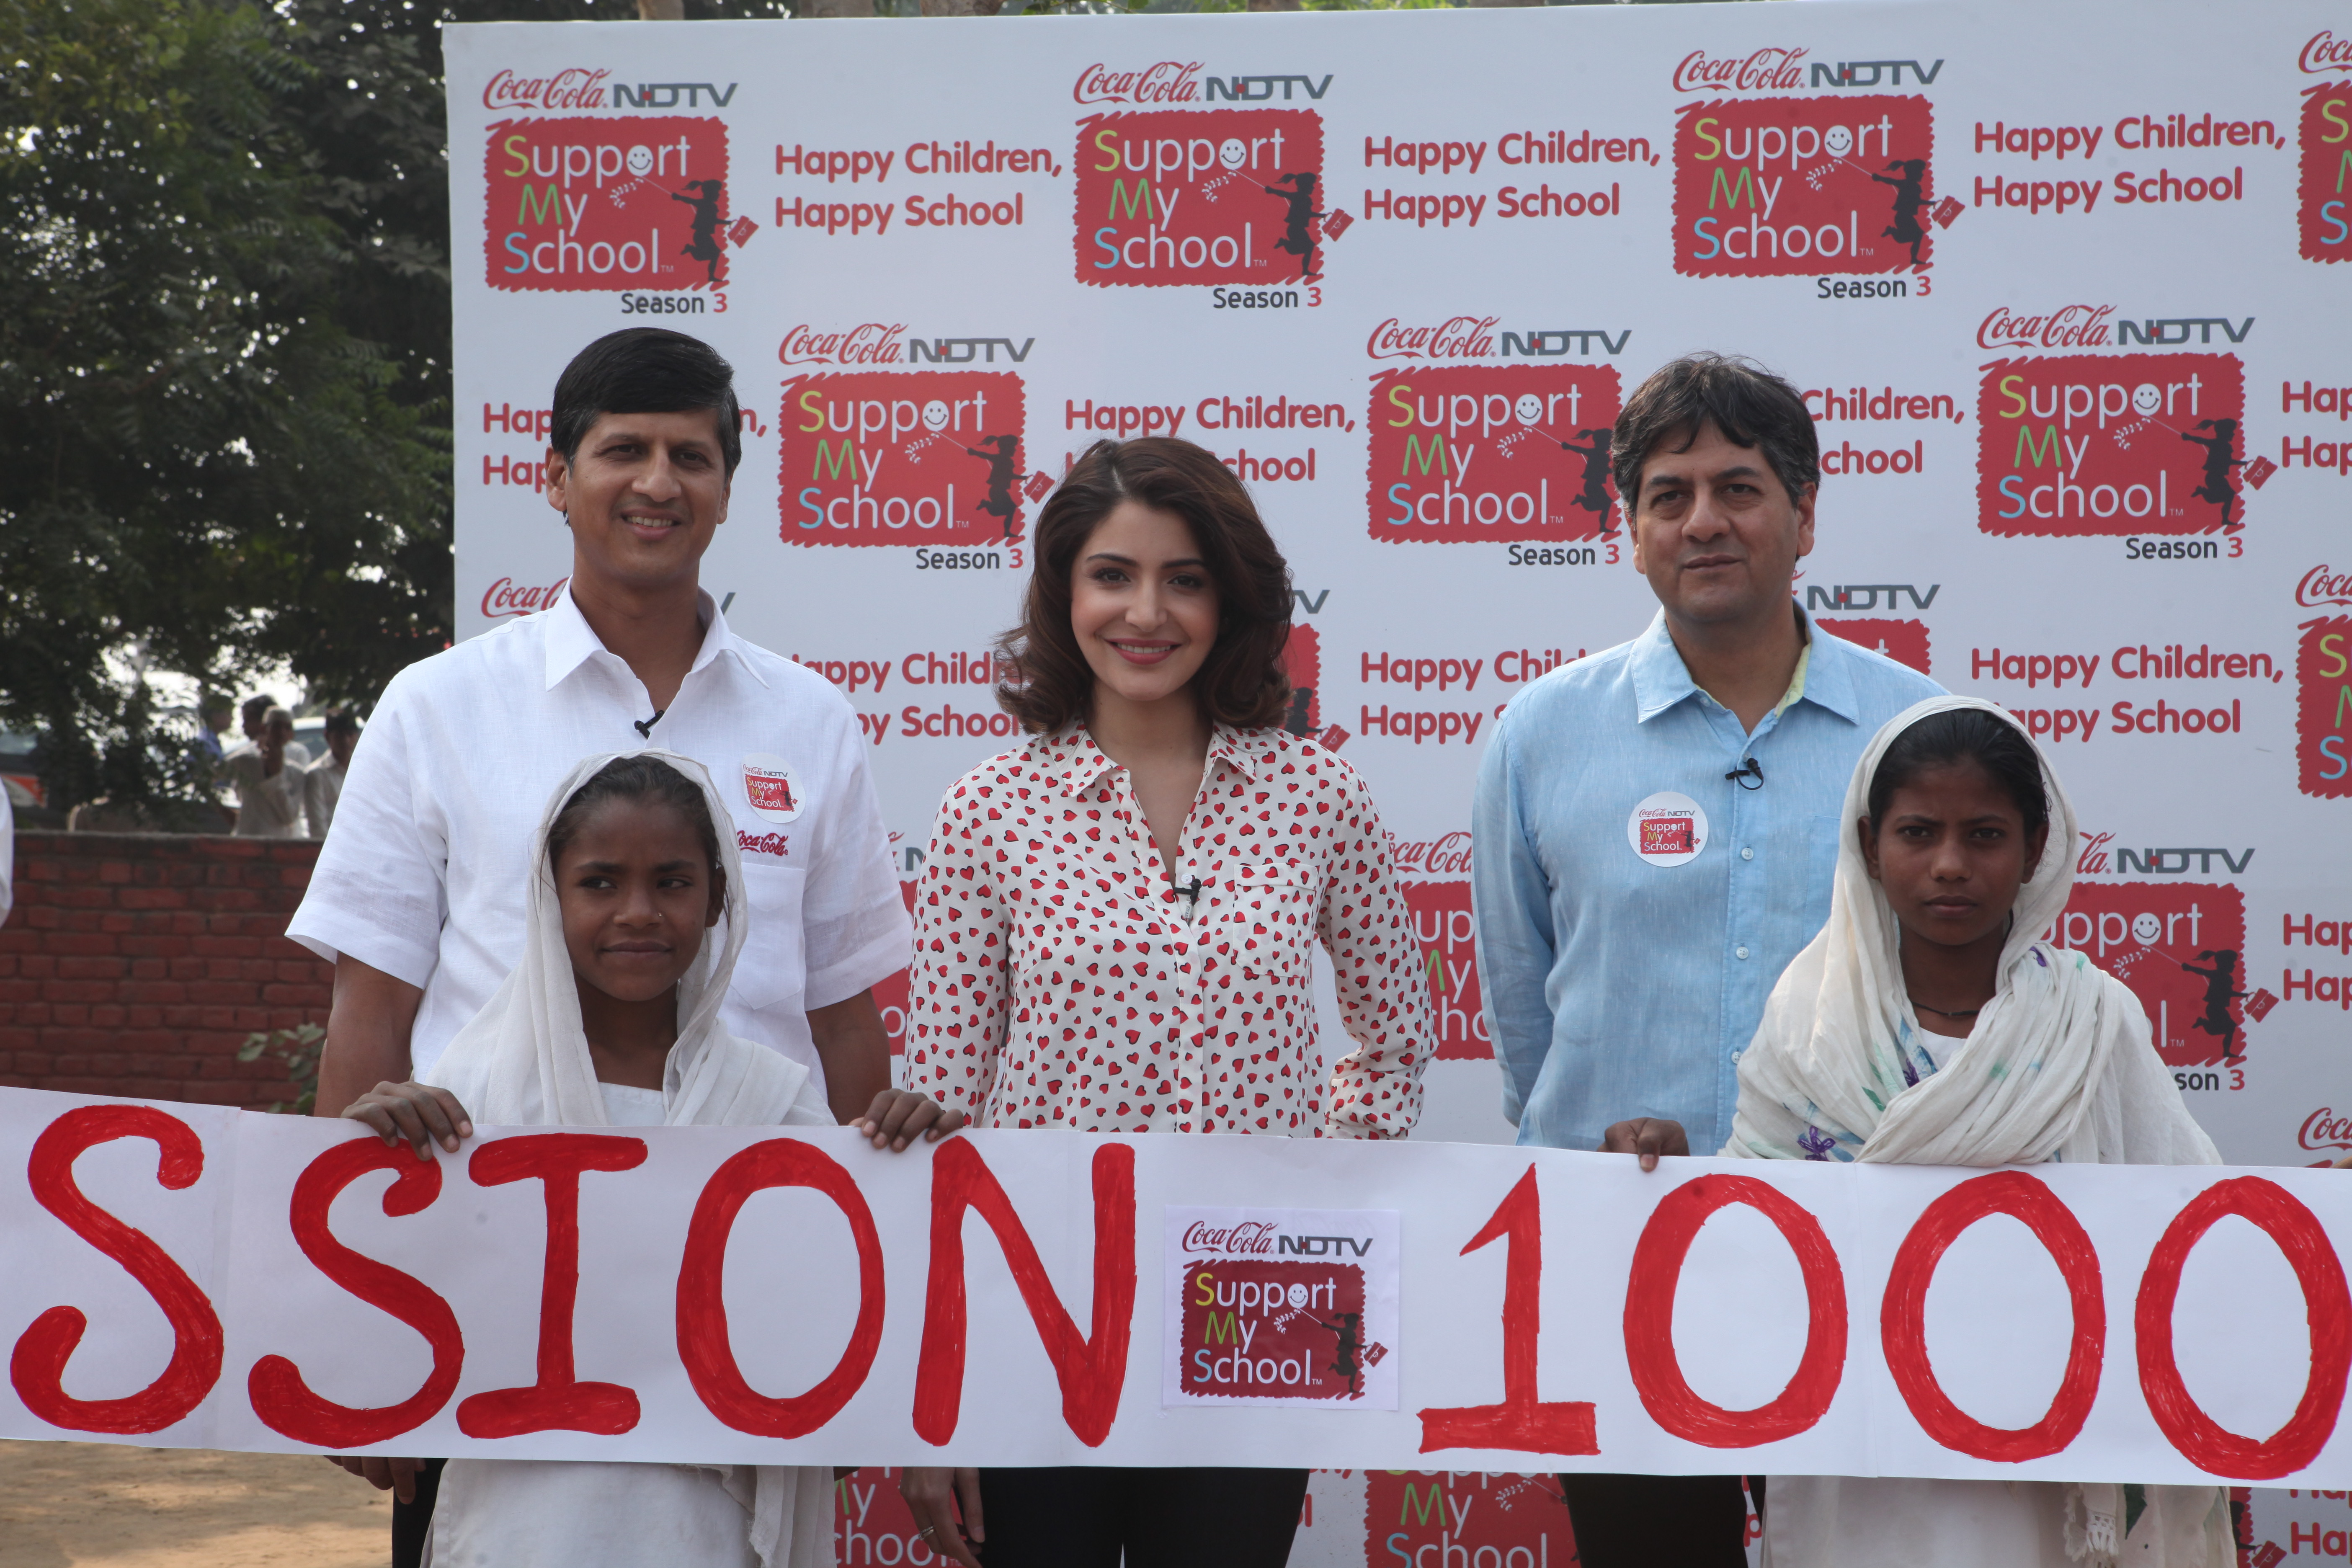 L to R -Venkatesh Kini- President Coca-Cola India and South West Asia,Anushka Sharma &Vikram Chandra –Group CEO-NDTV launched Support My School (SMS) Season 3-jpg